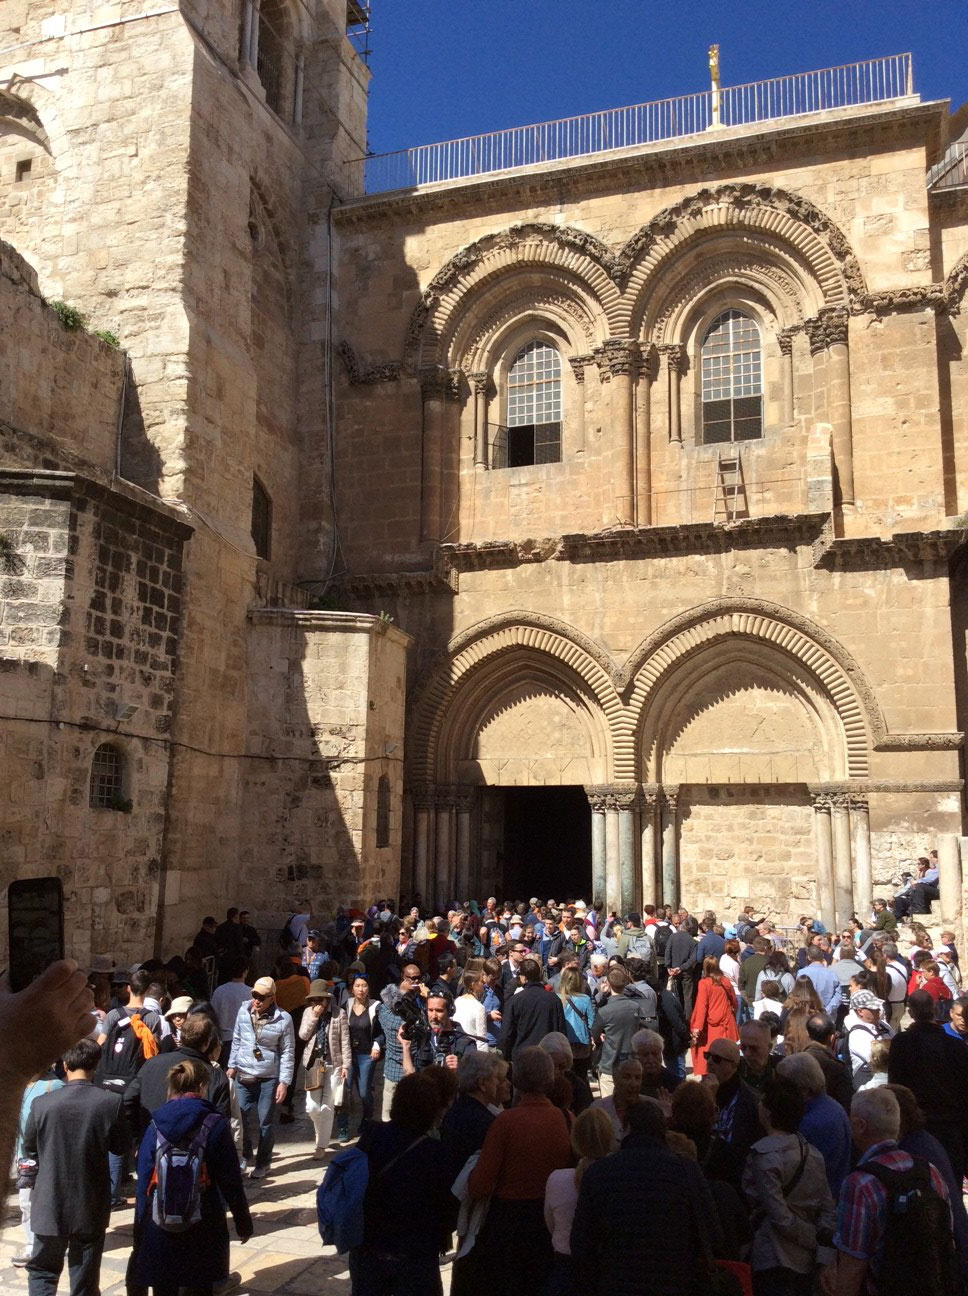 Thousands of people throng to the Holy Sepulchre Church on February 28, two days after its doors had been shut by Church leaders.